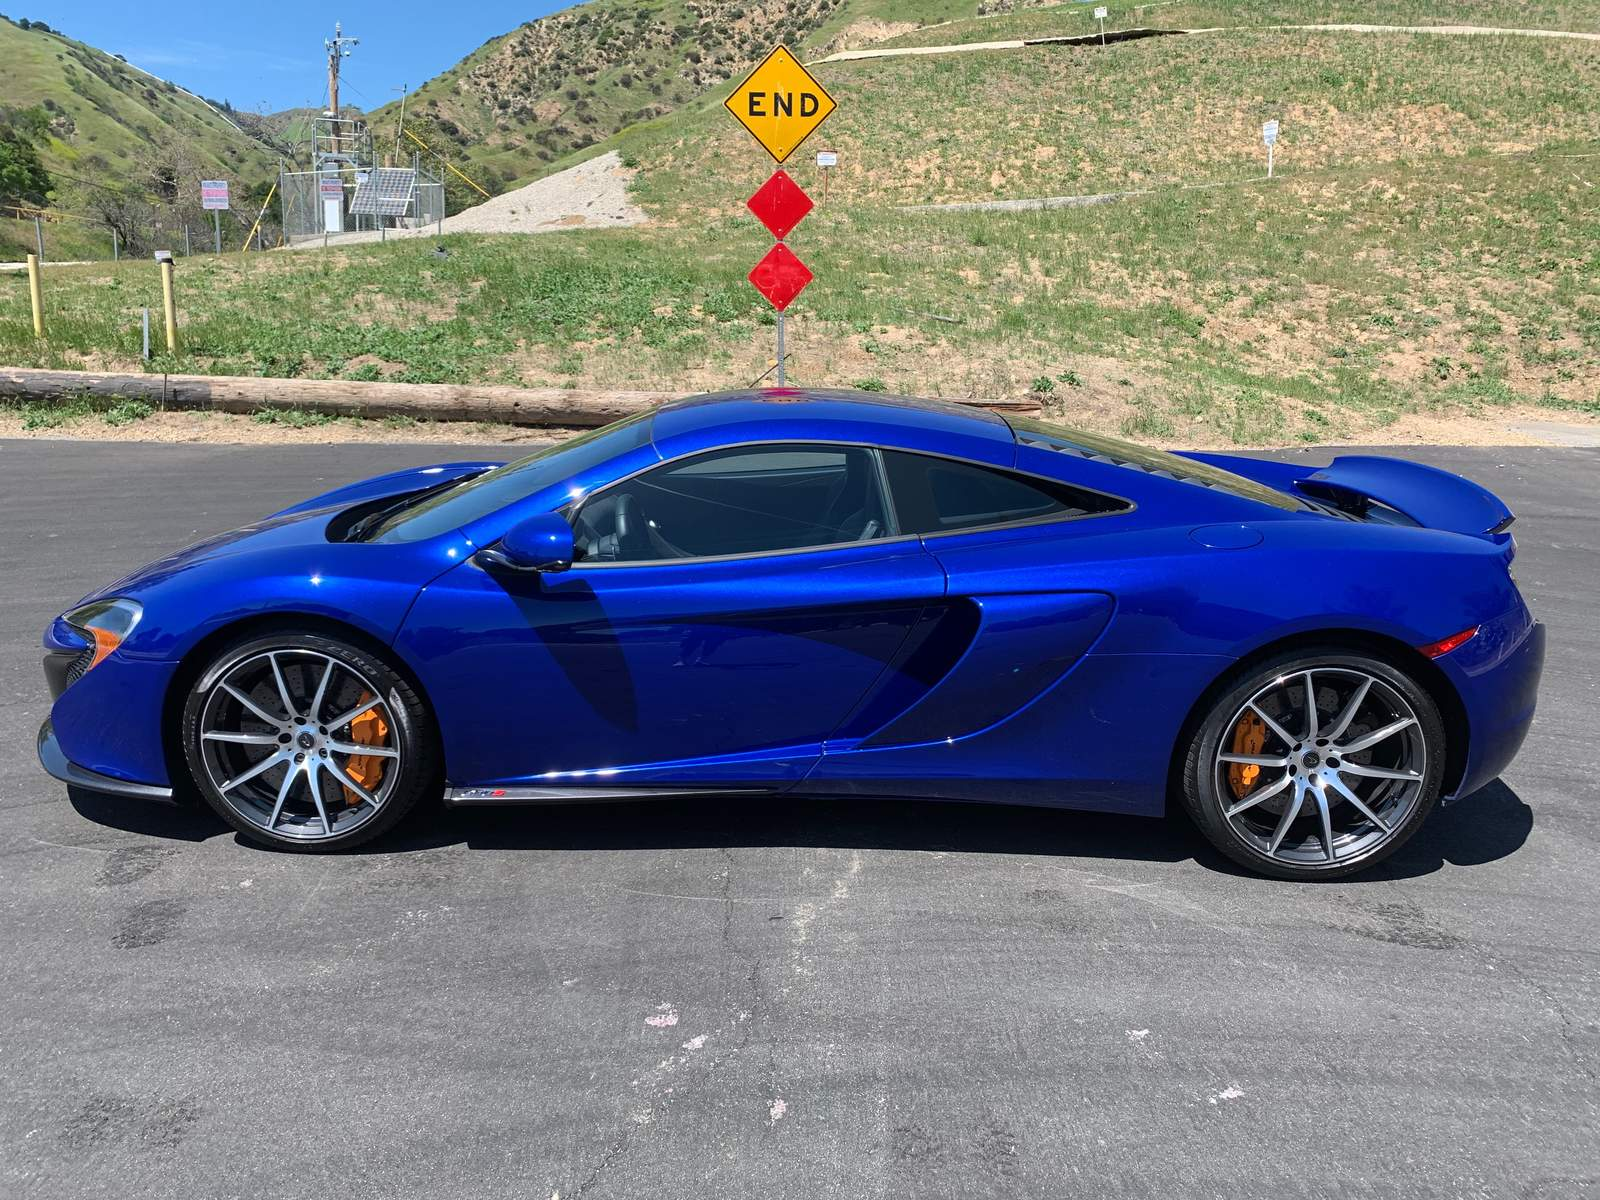 Amazon Leasings Exotic Car Lease Calculator For Public And Dealers Pro News Report